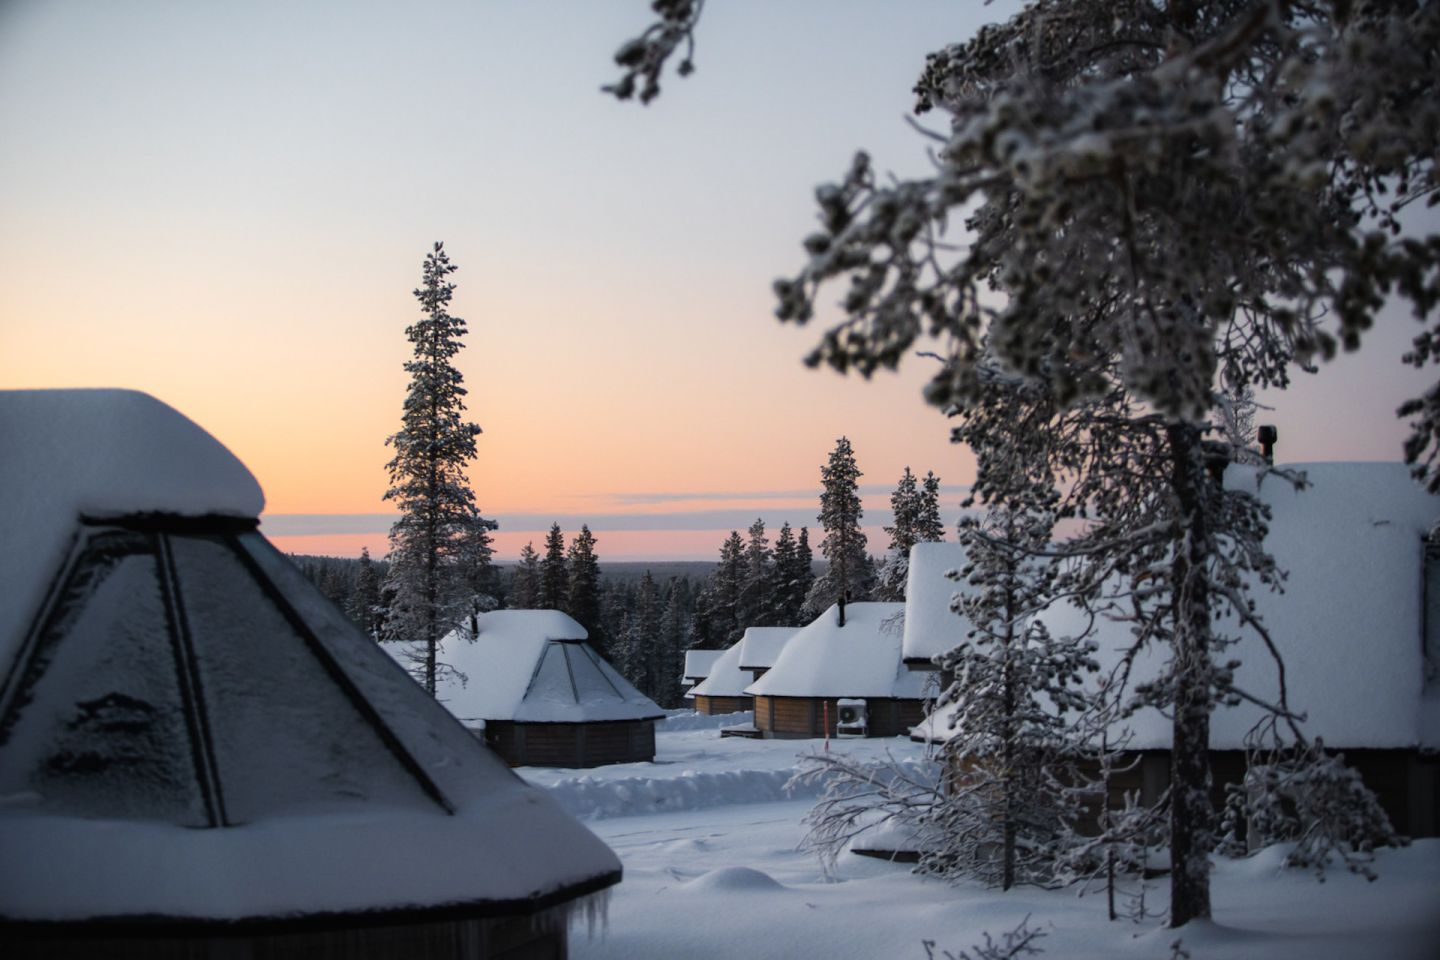 Polar night at Northern Lights Village, a special winter accommodation in Finnish Lapland